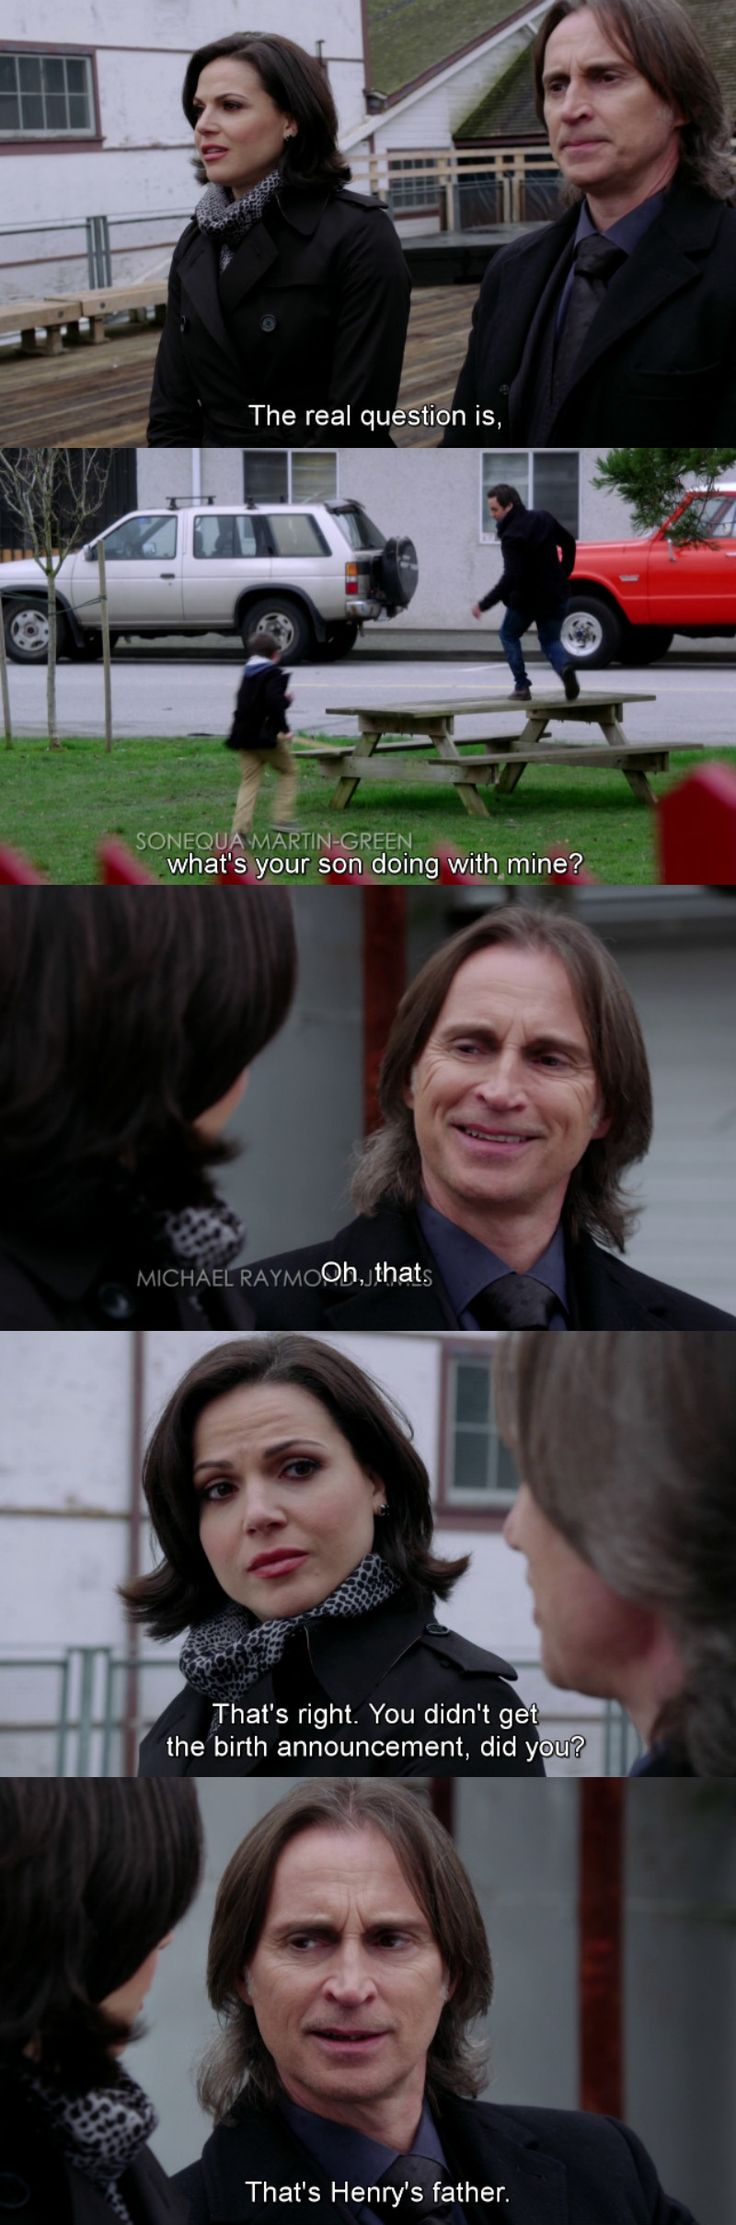 Oh that's Henry father. - Rumple - Lacey 2 * 19